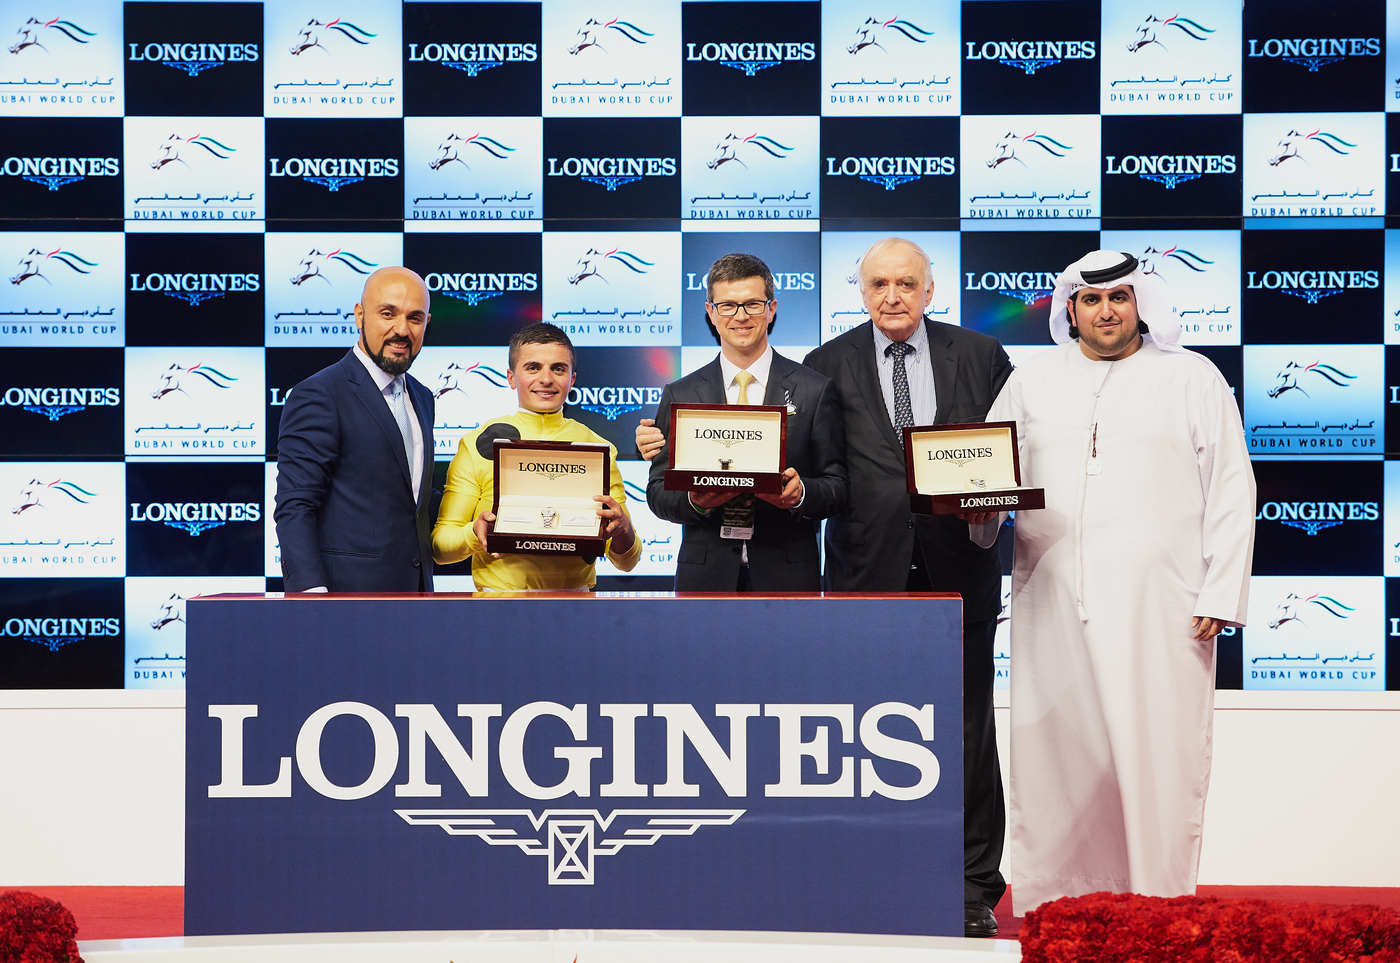 Longines Flat Racing Event: Longines timed the prestigious races of the Dubai World Cup 3